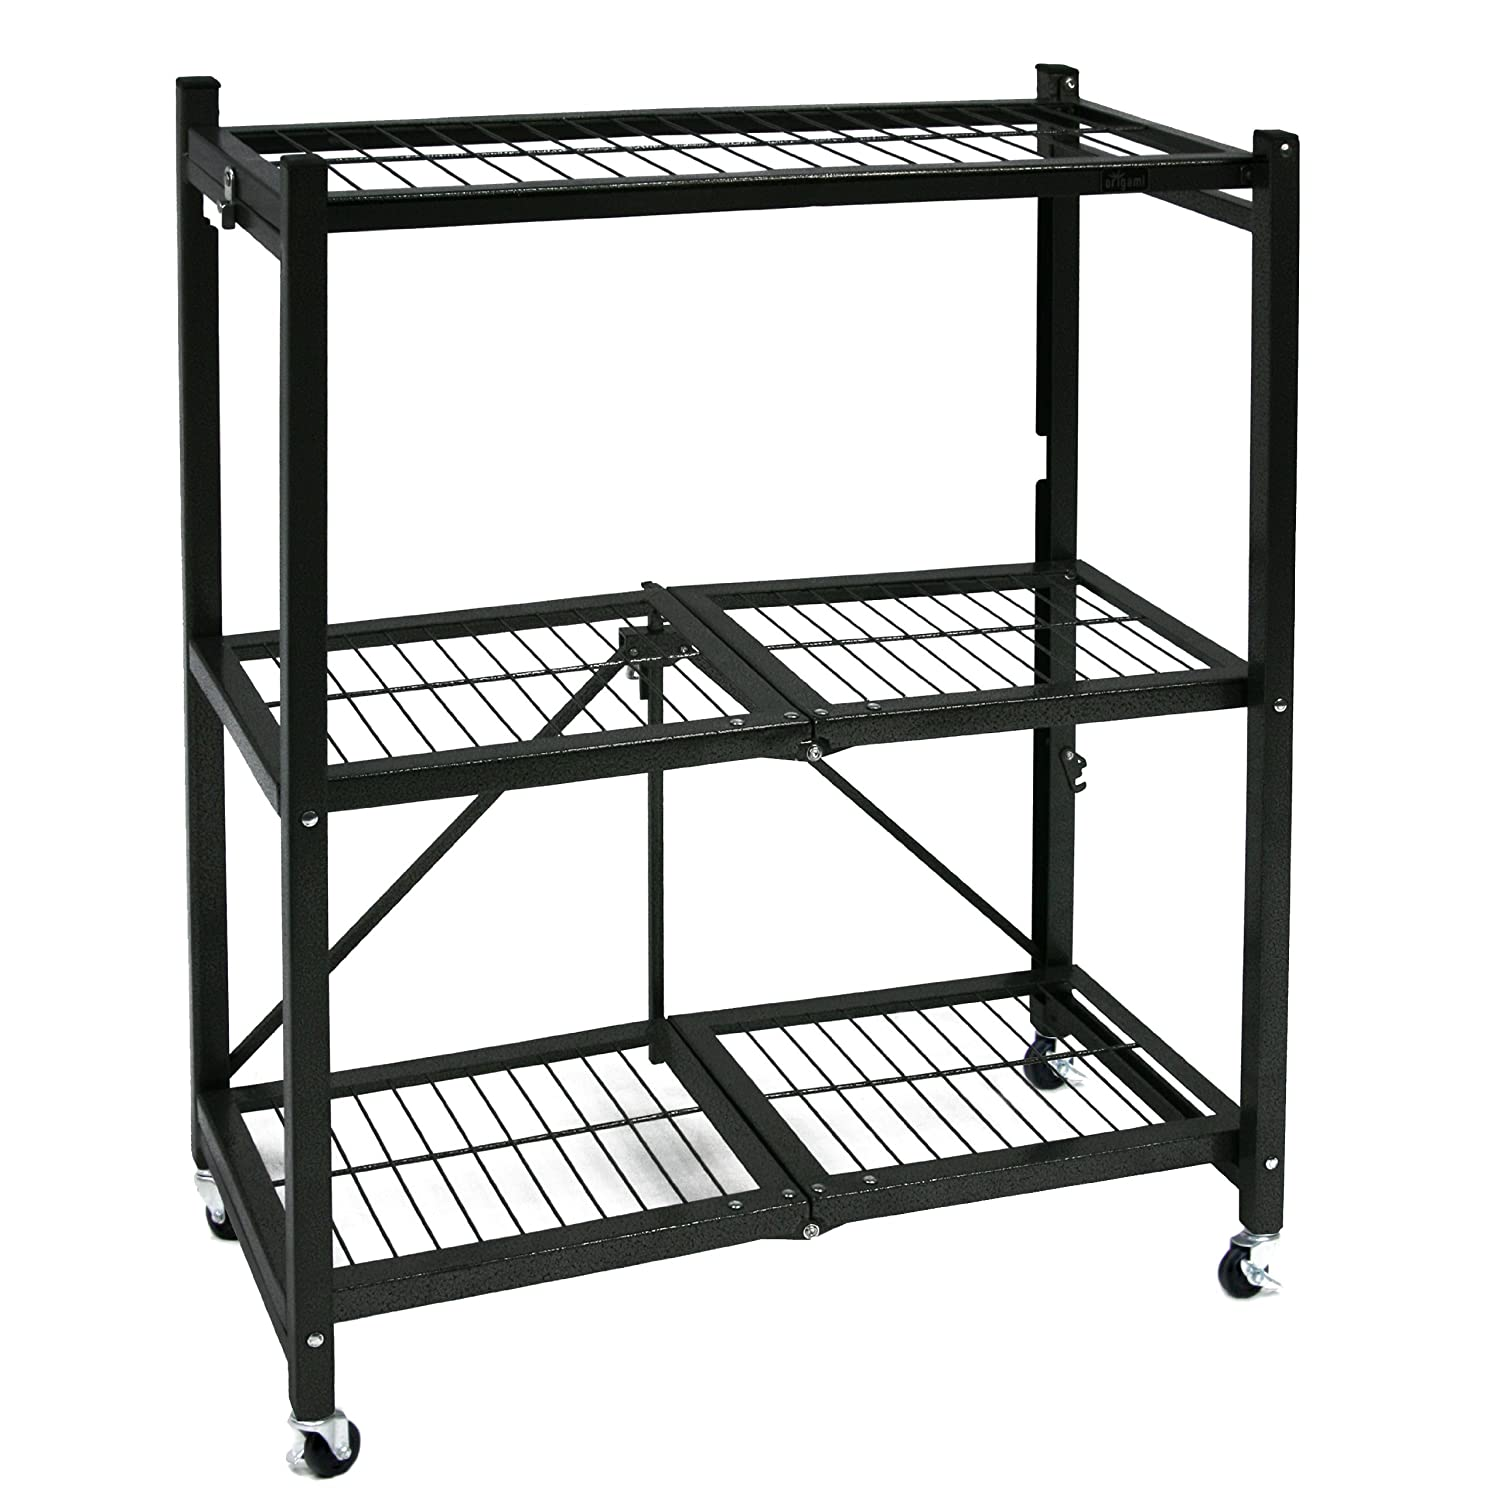 Gorilla Garage Racks Storage Rack Folding Shelves W Wheels Heavy Duty Shelf